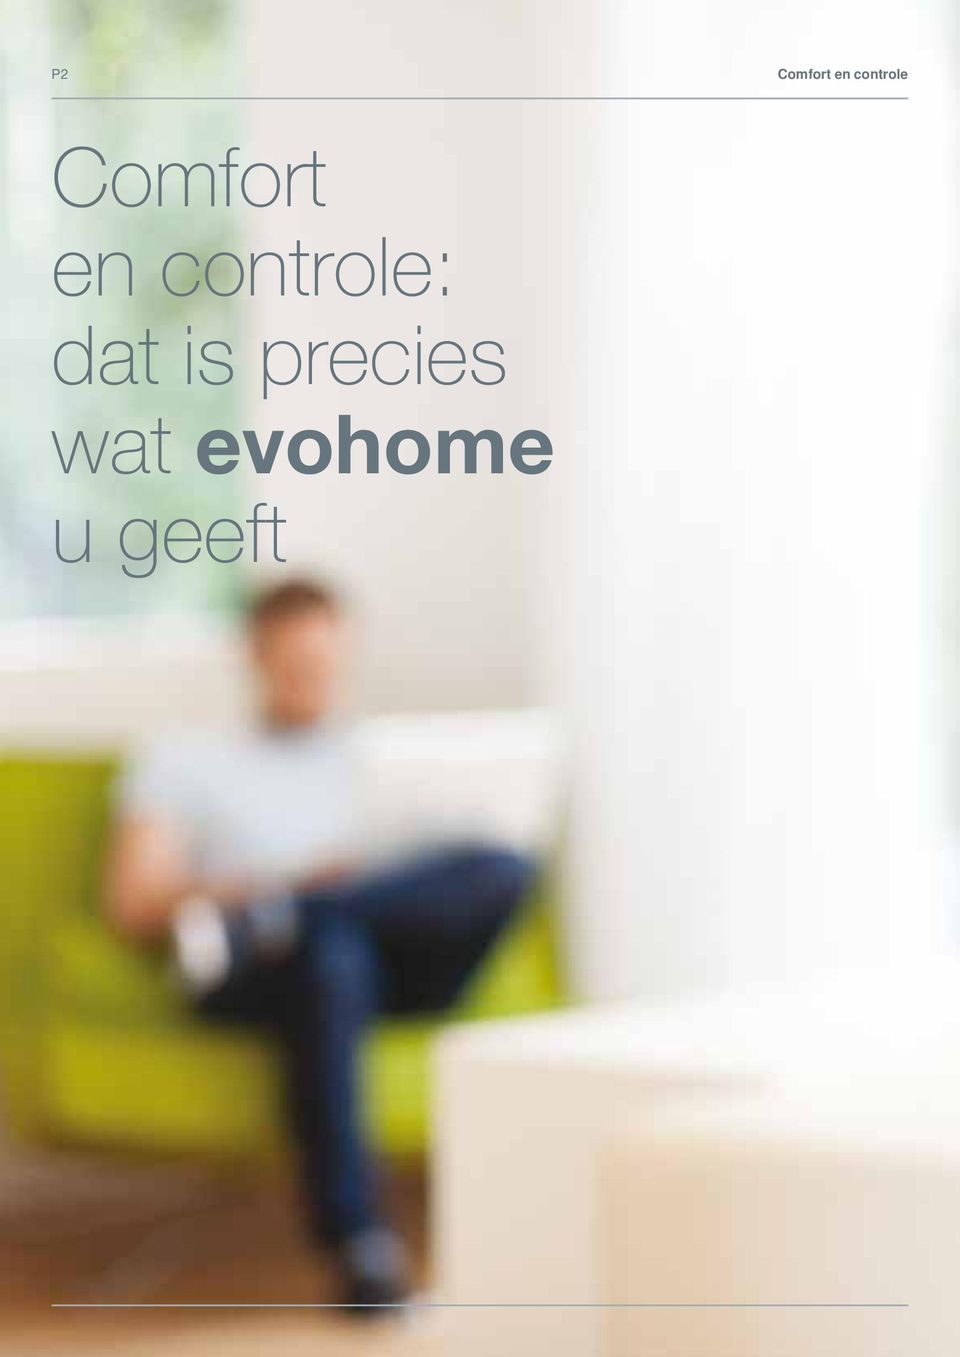 controle: dat is